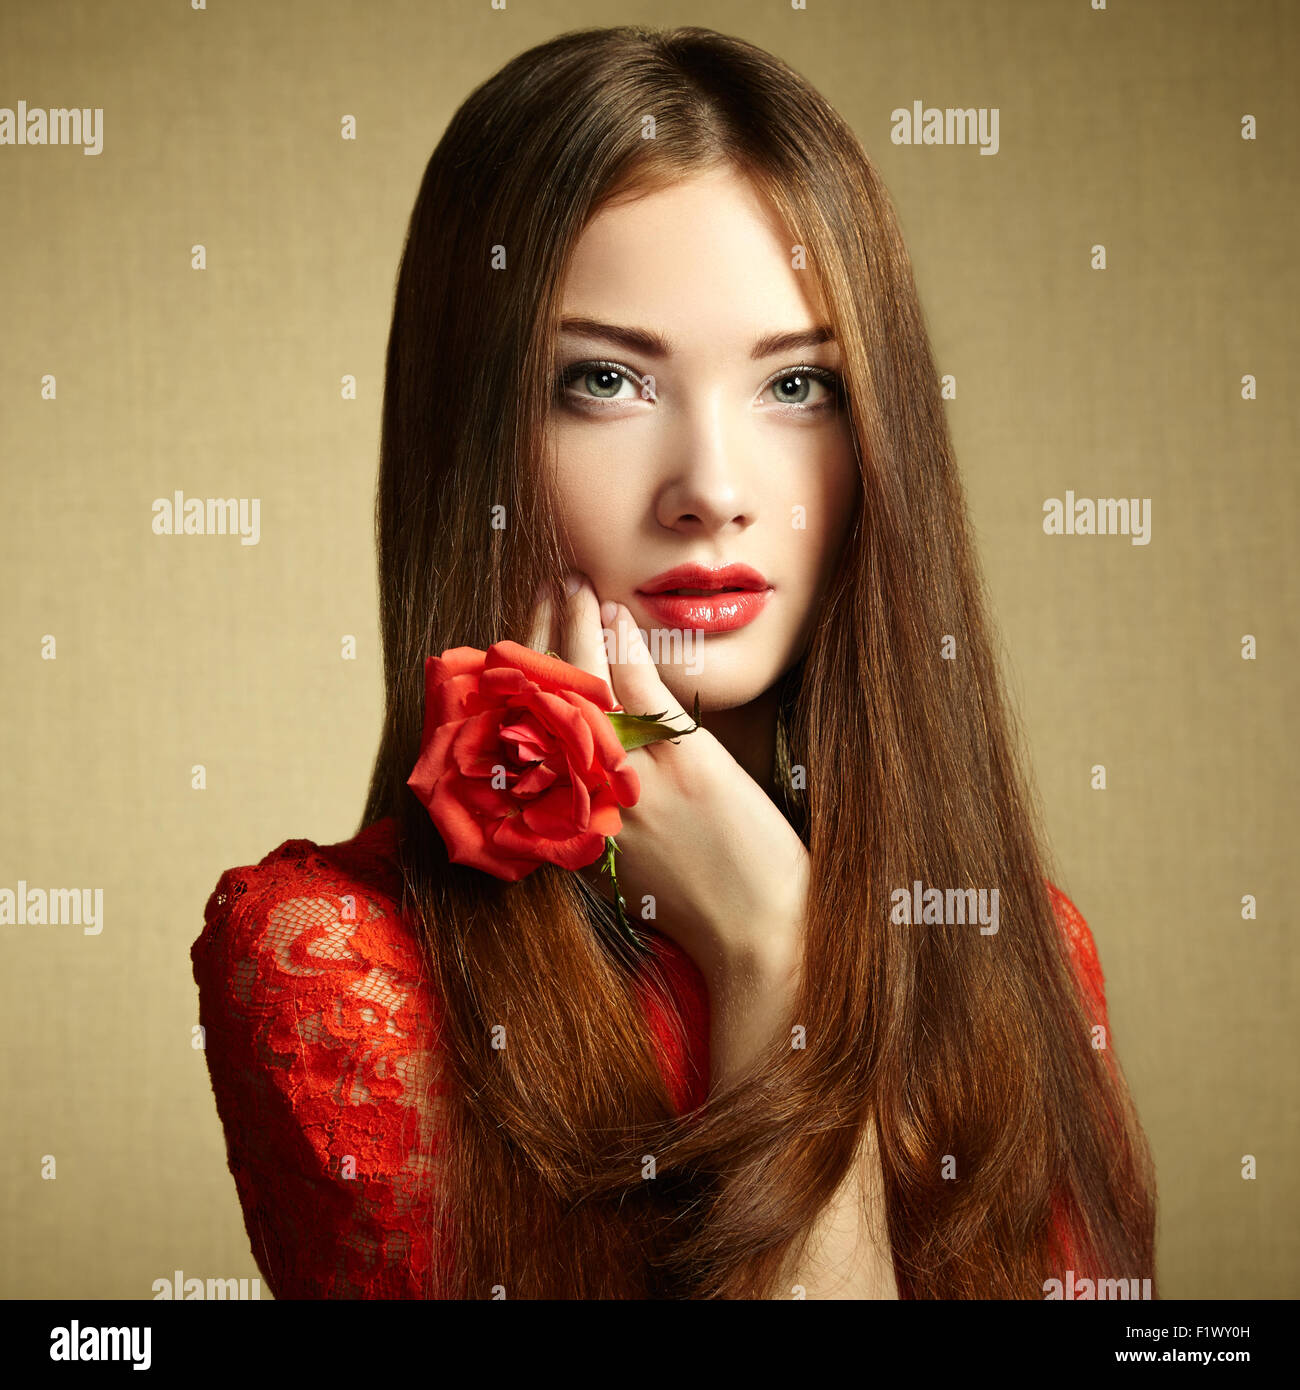 Portrait of beautiful dark haired woman with flowers fashion photo portrait of beautiful dark haired woman with flowers fashion photo izmirmasajfo